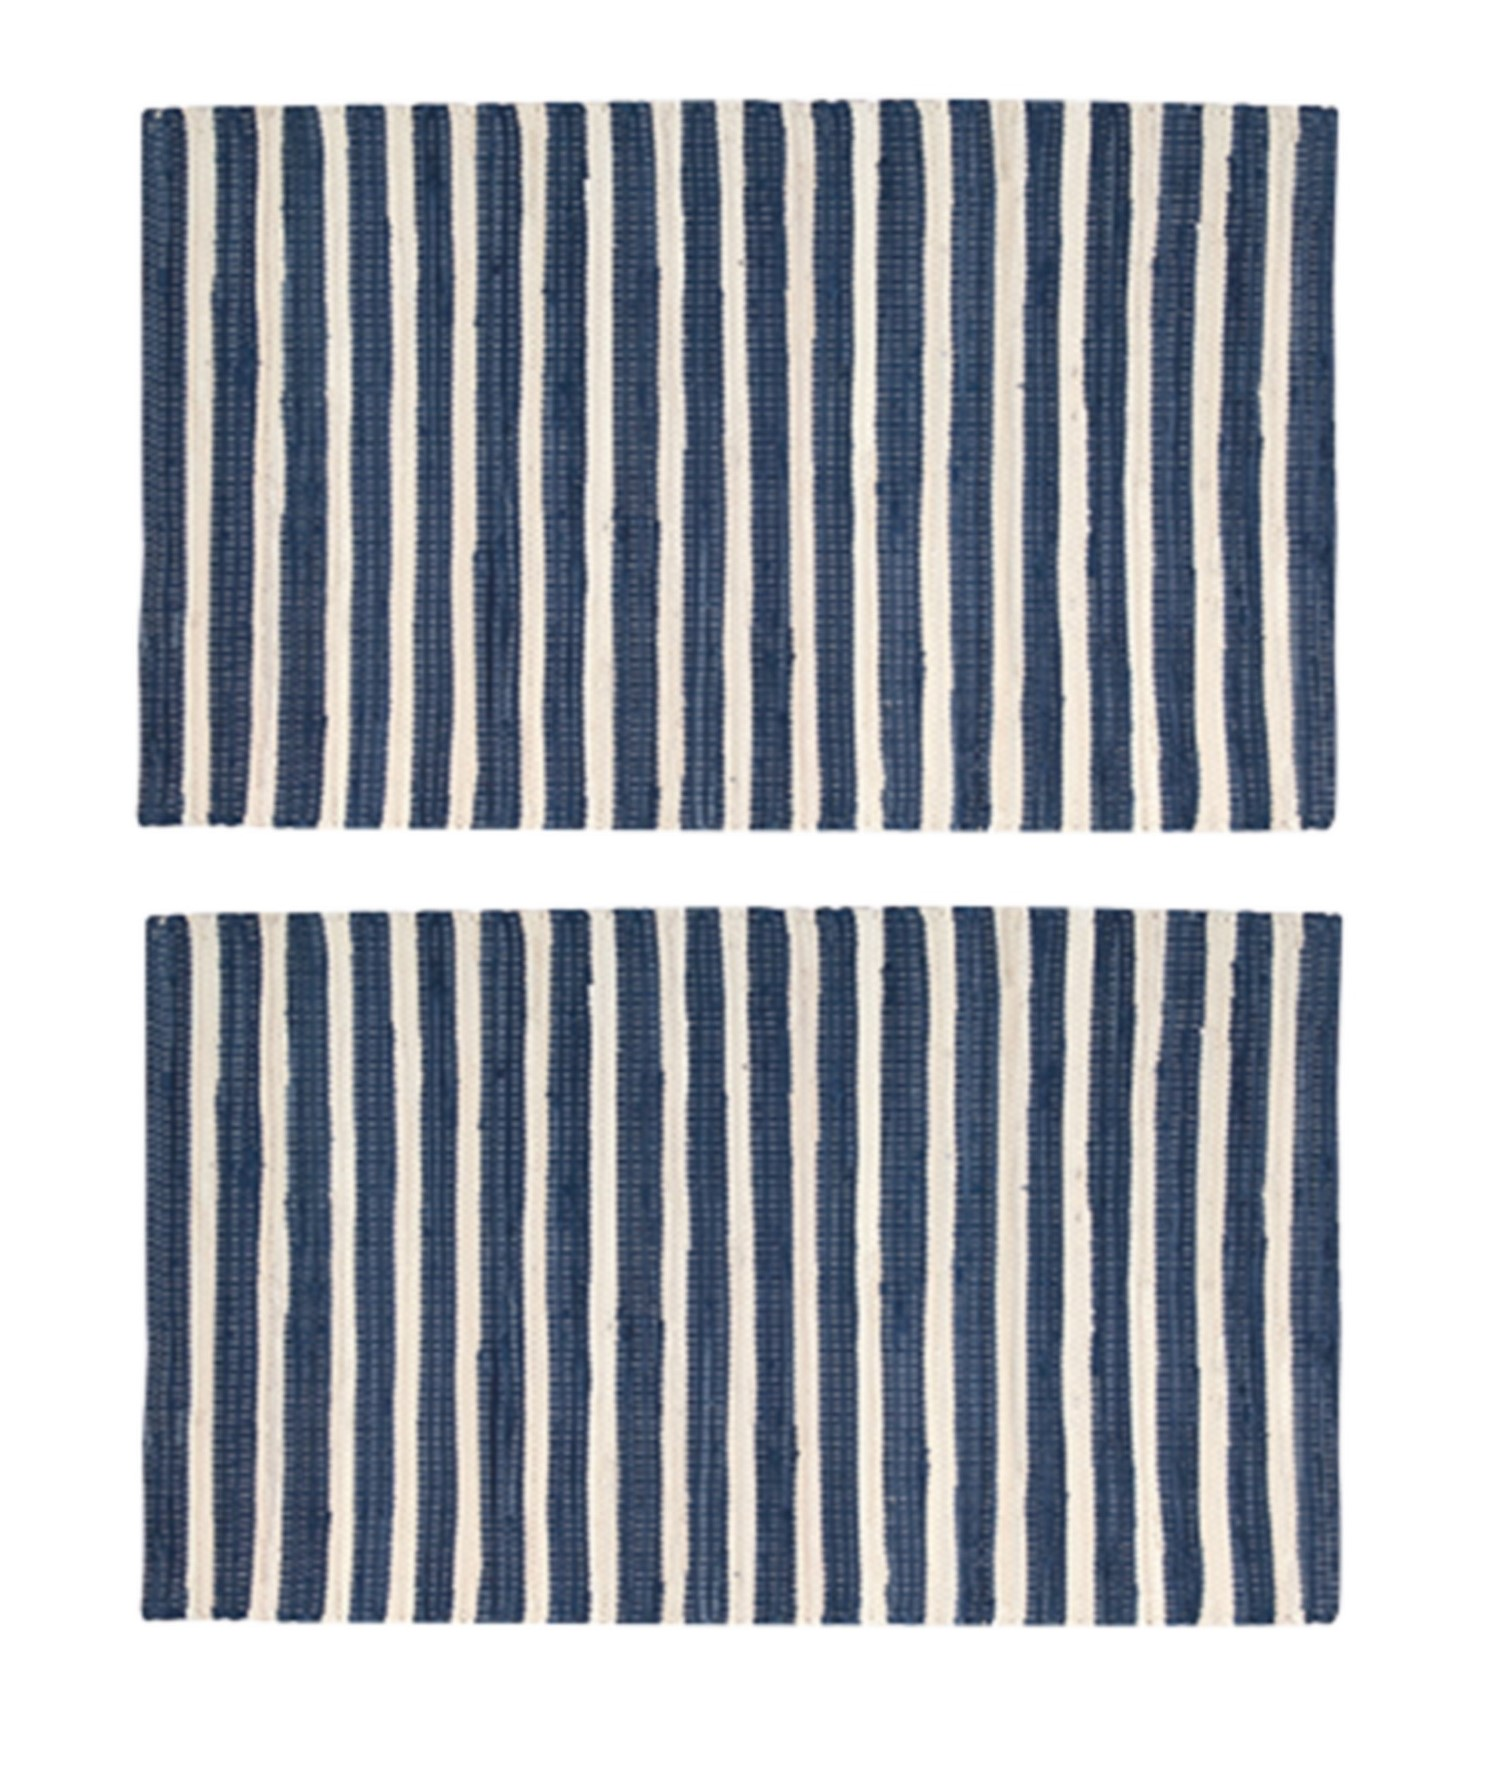 2-PACK-Nourison-Brunswick-Stripe-Accent-Floor-Area-Rugs-24-034-x-36-034-or-30-034-x-48-034 thumbnail 4